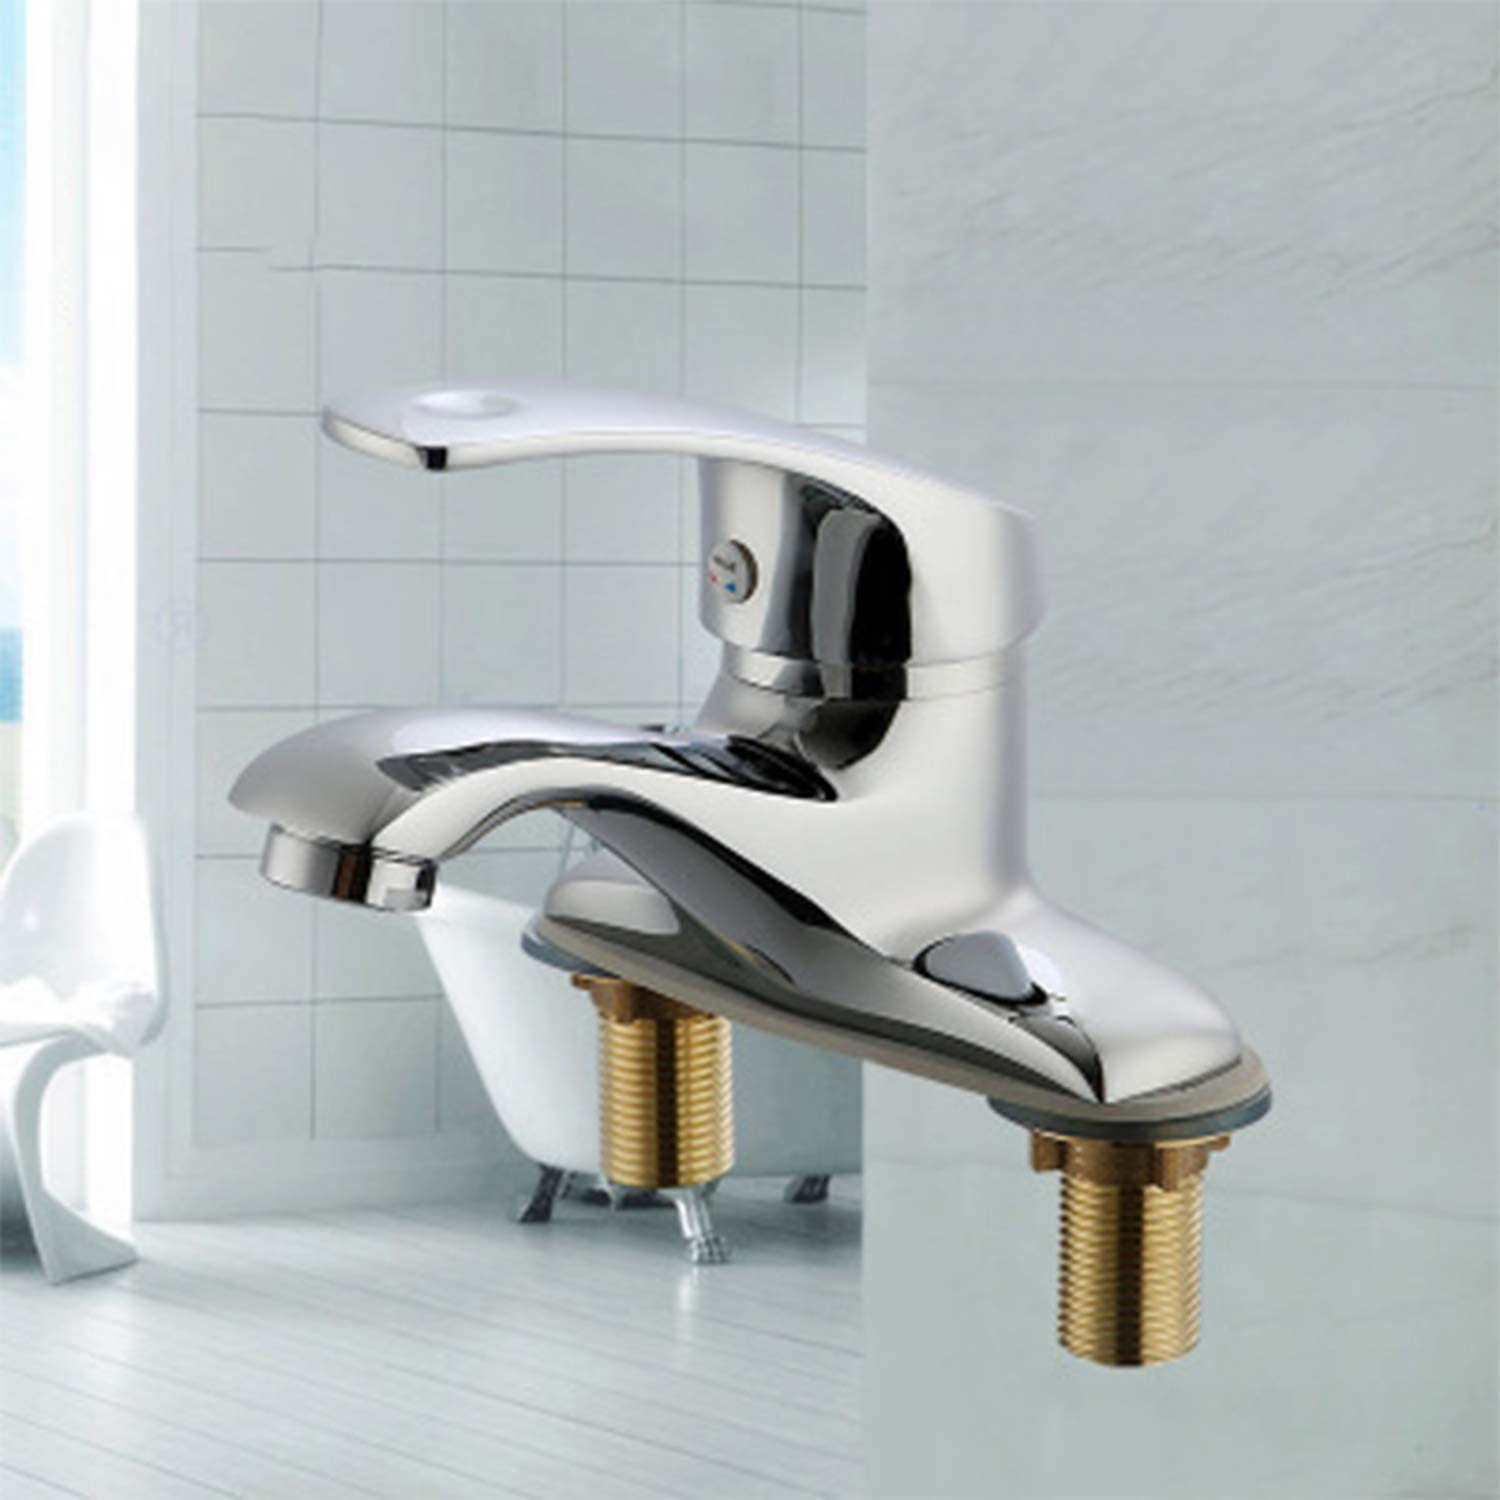 Stainless Steel Bathroom, Basin, Double Tap, Ceramic Valve Plug Mounting Hole  32 MM, Water Inlet  Standard 4 Points